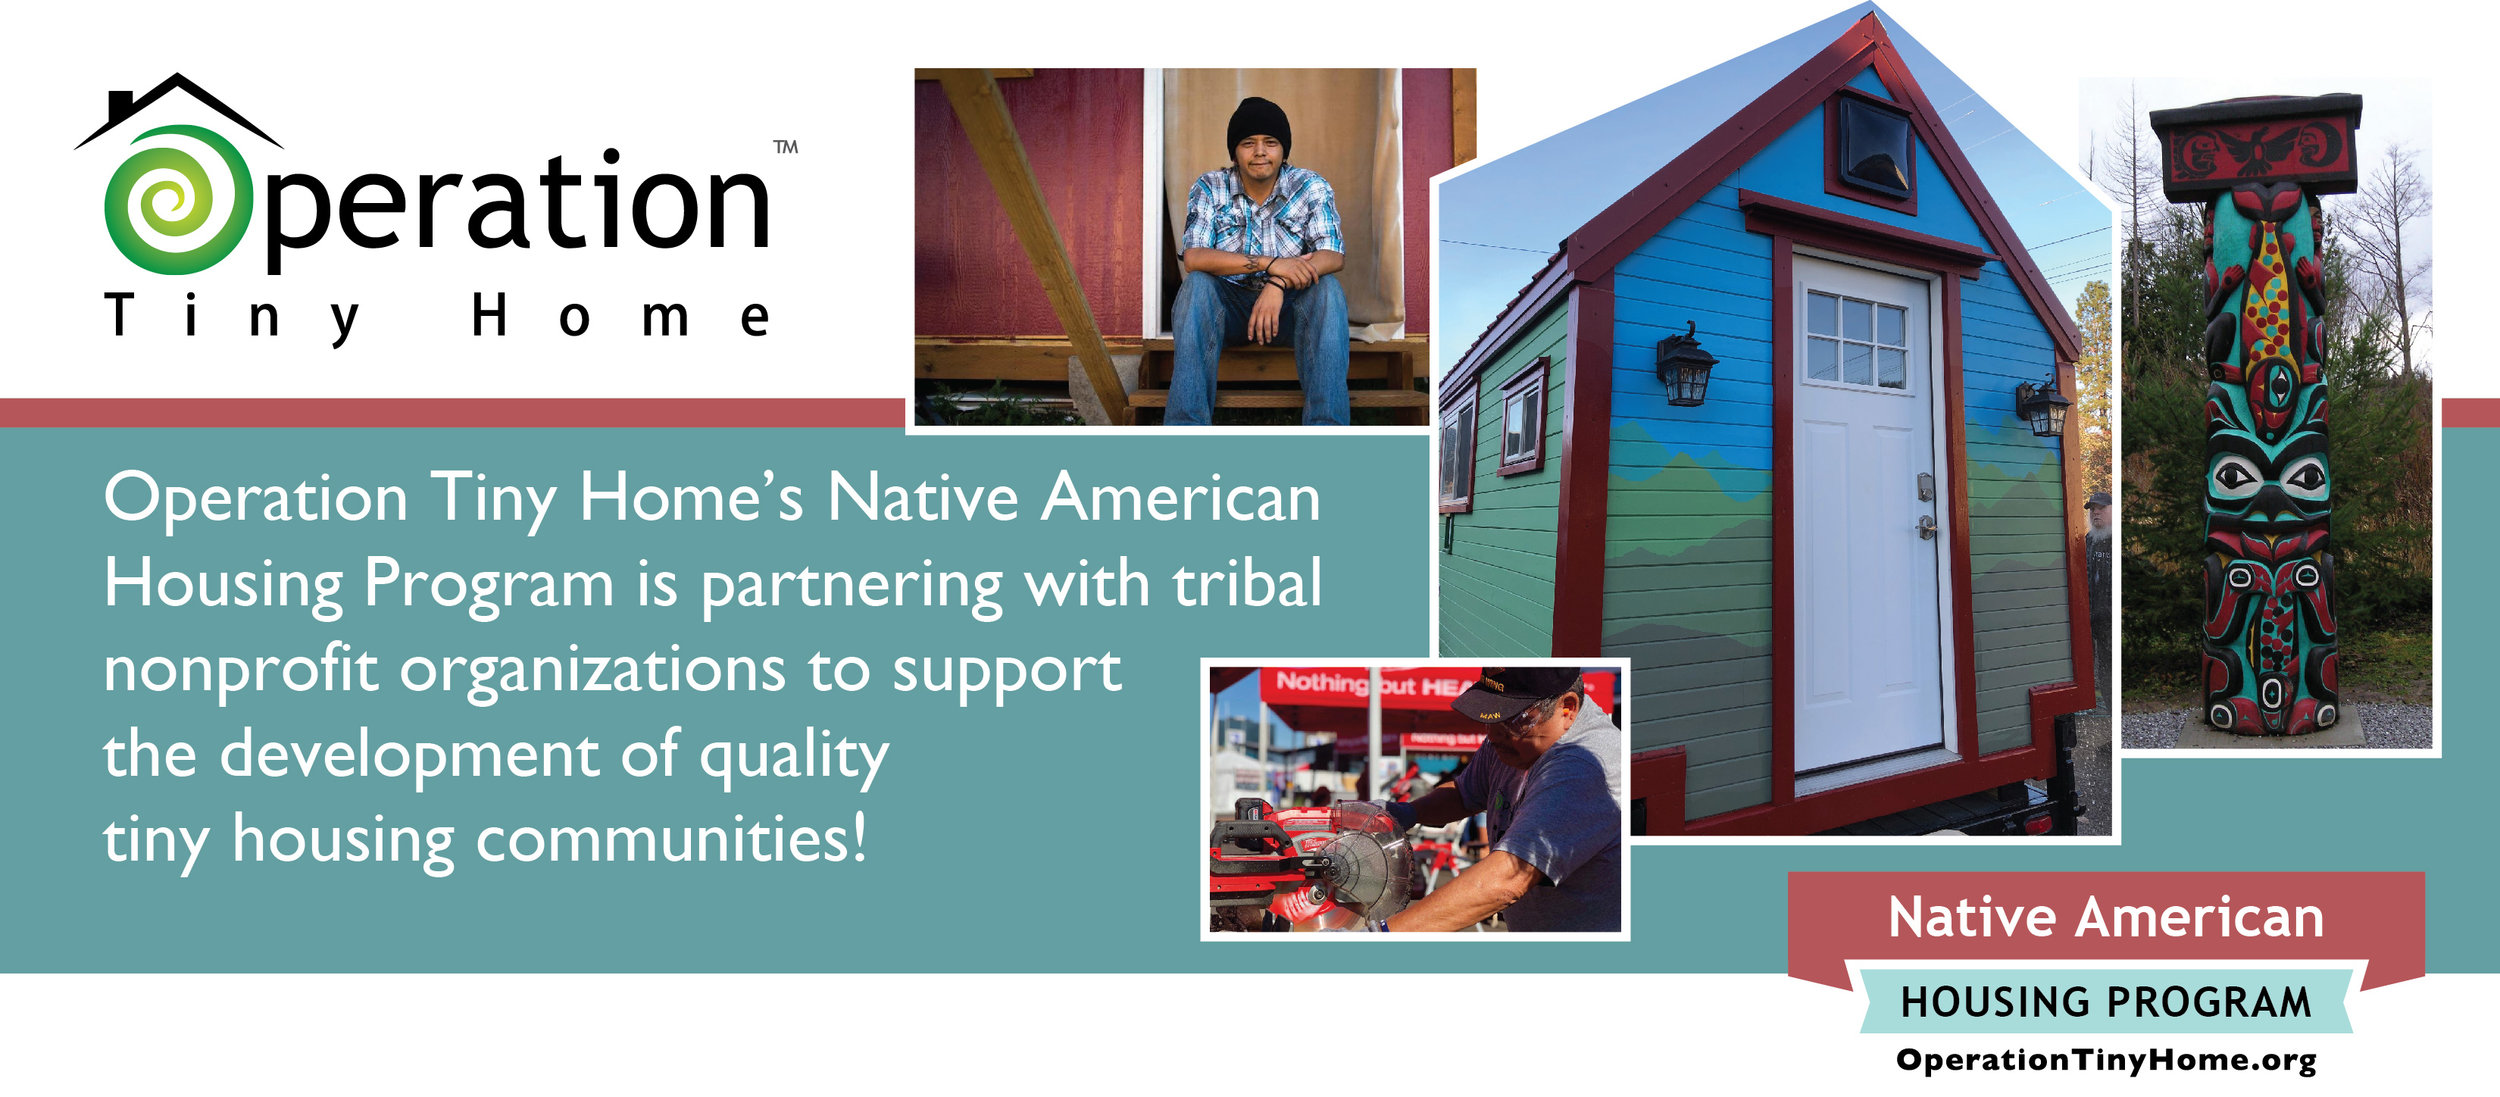 NativeAmericanProgram_WebBanner_032119.jpg